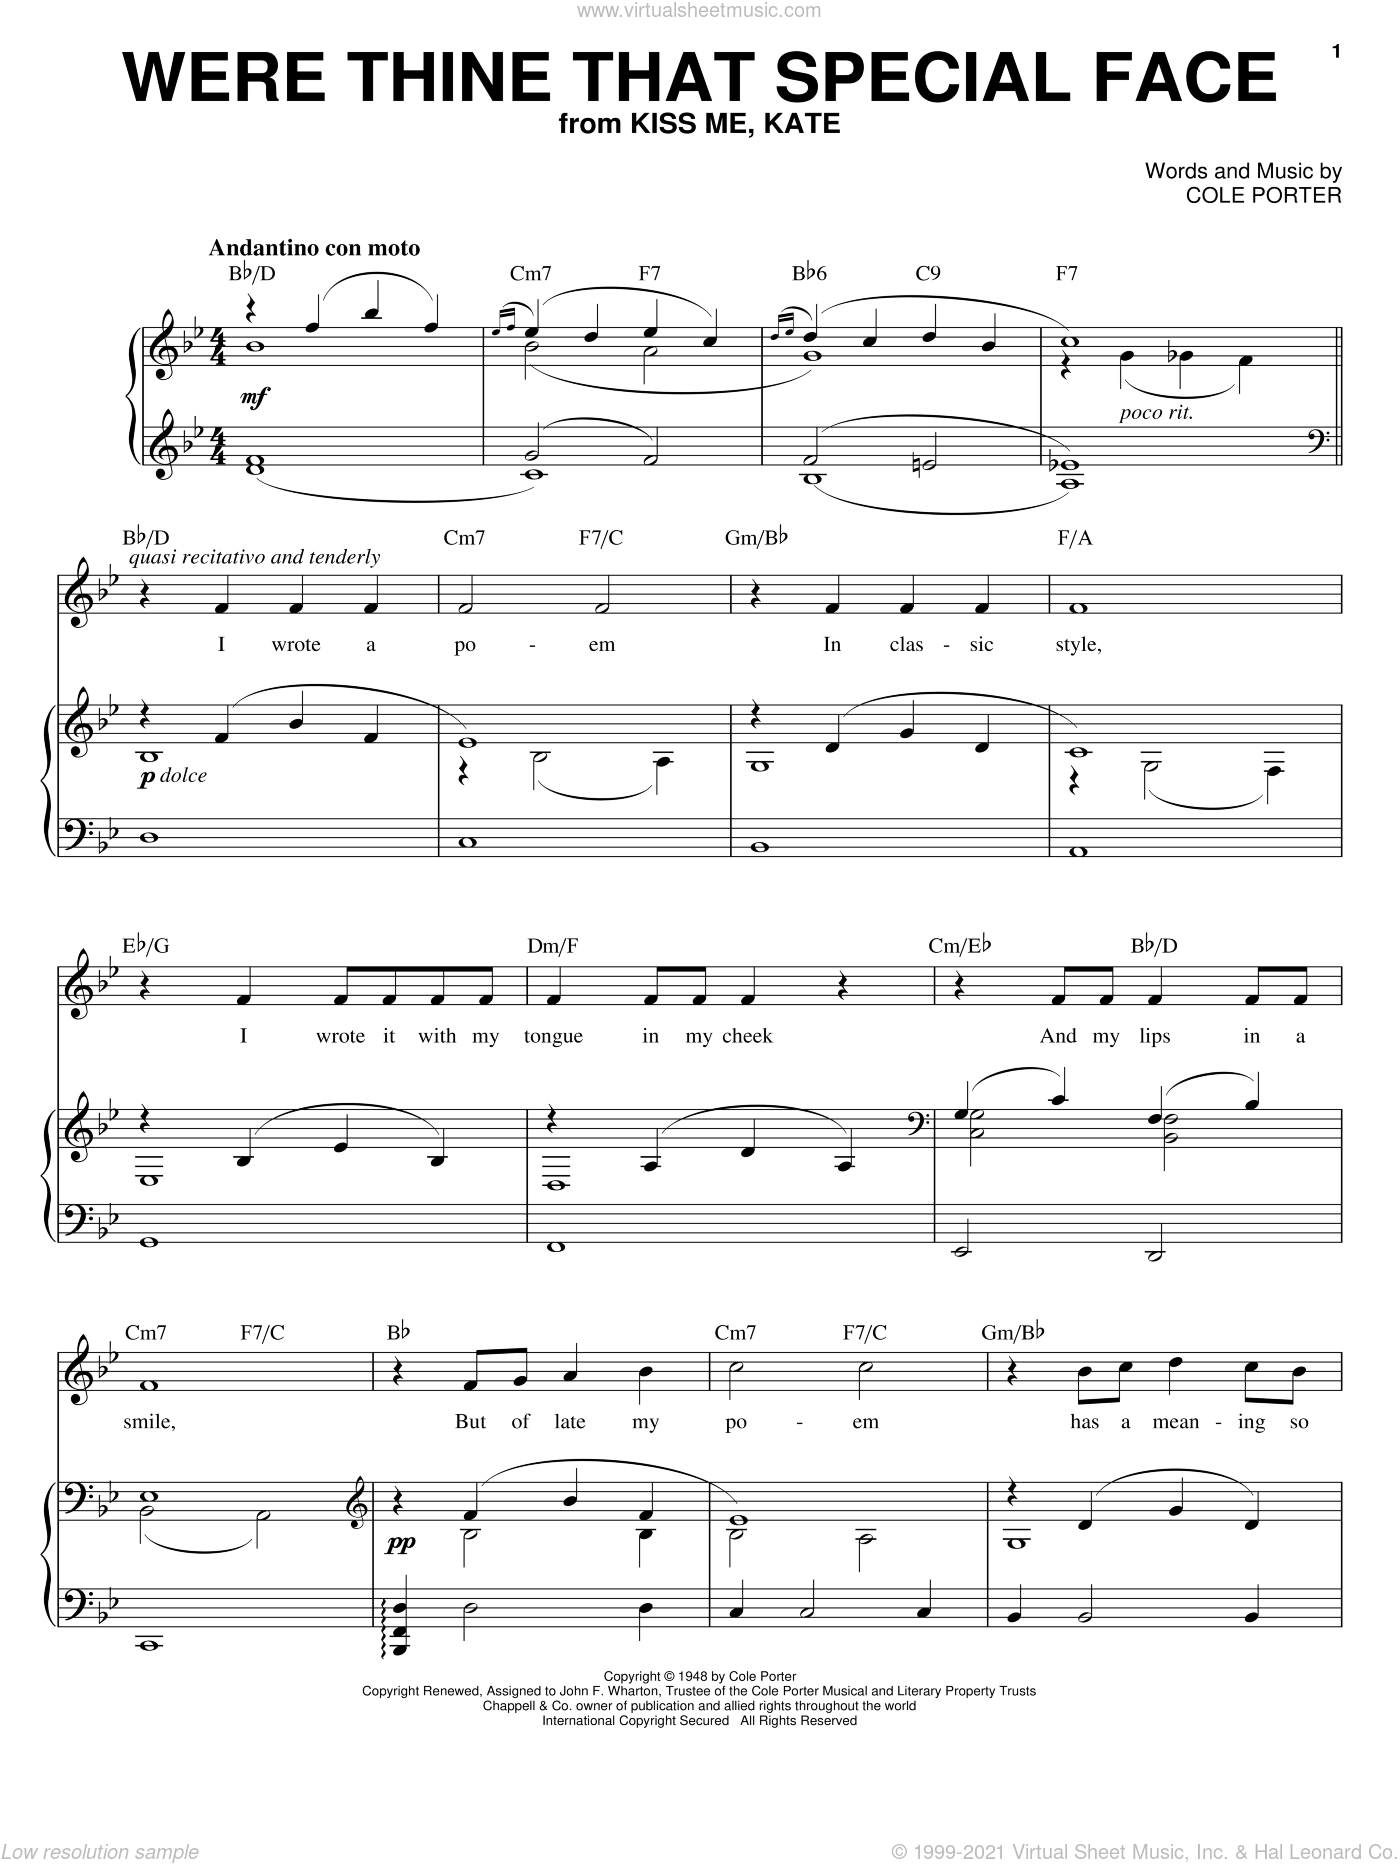 Were Thine That Special Face (from Kiss Me, Kate) sheet music for voice and piano by Joan Frey Boytim and Cole Porter, intermediate skill level